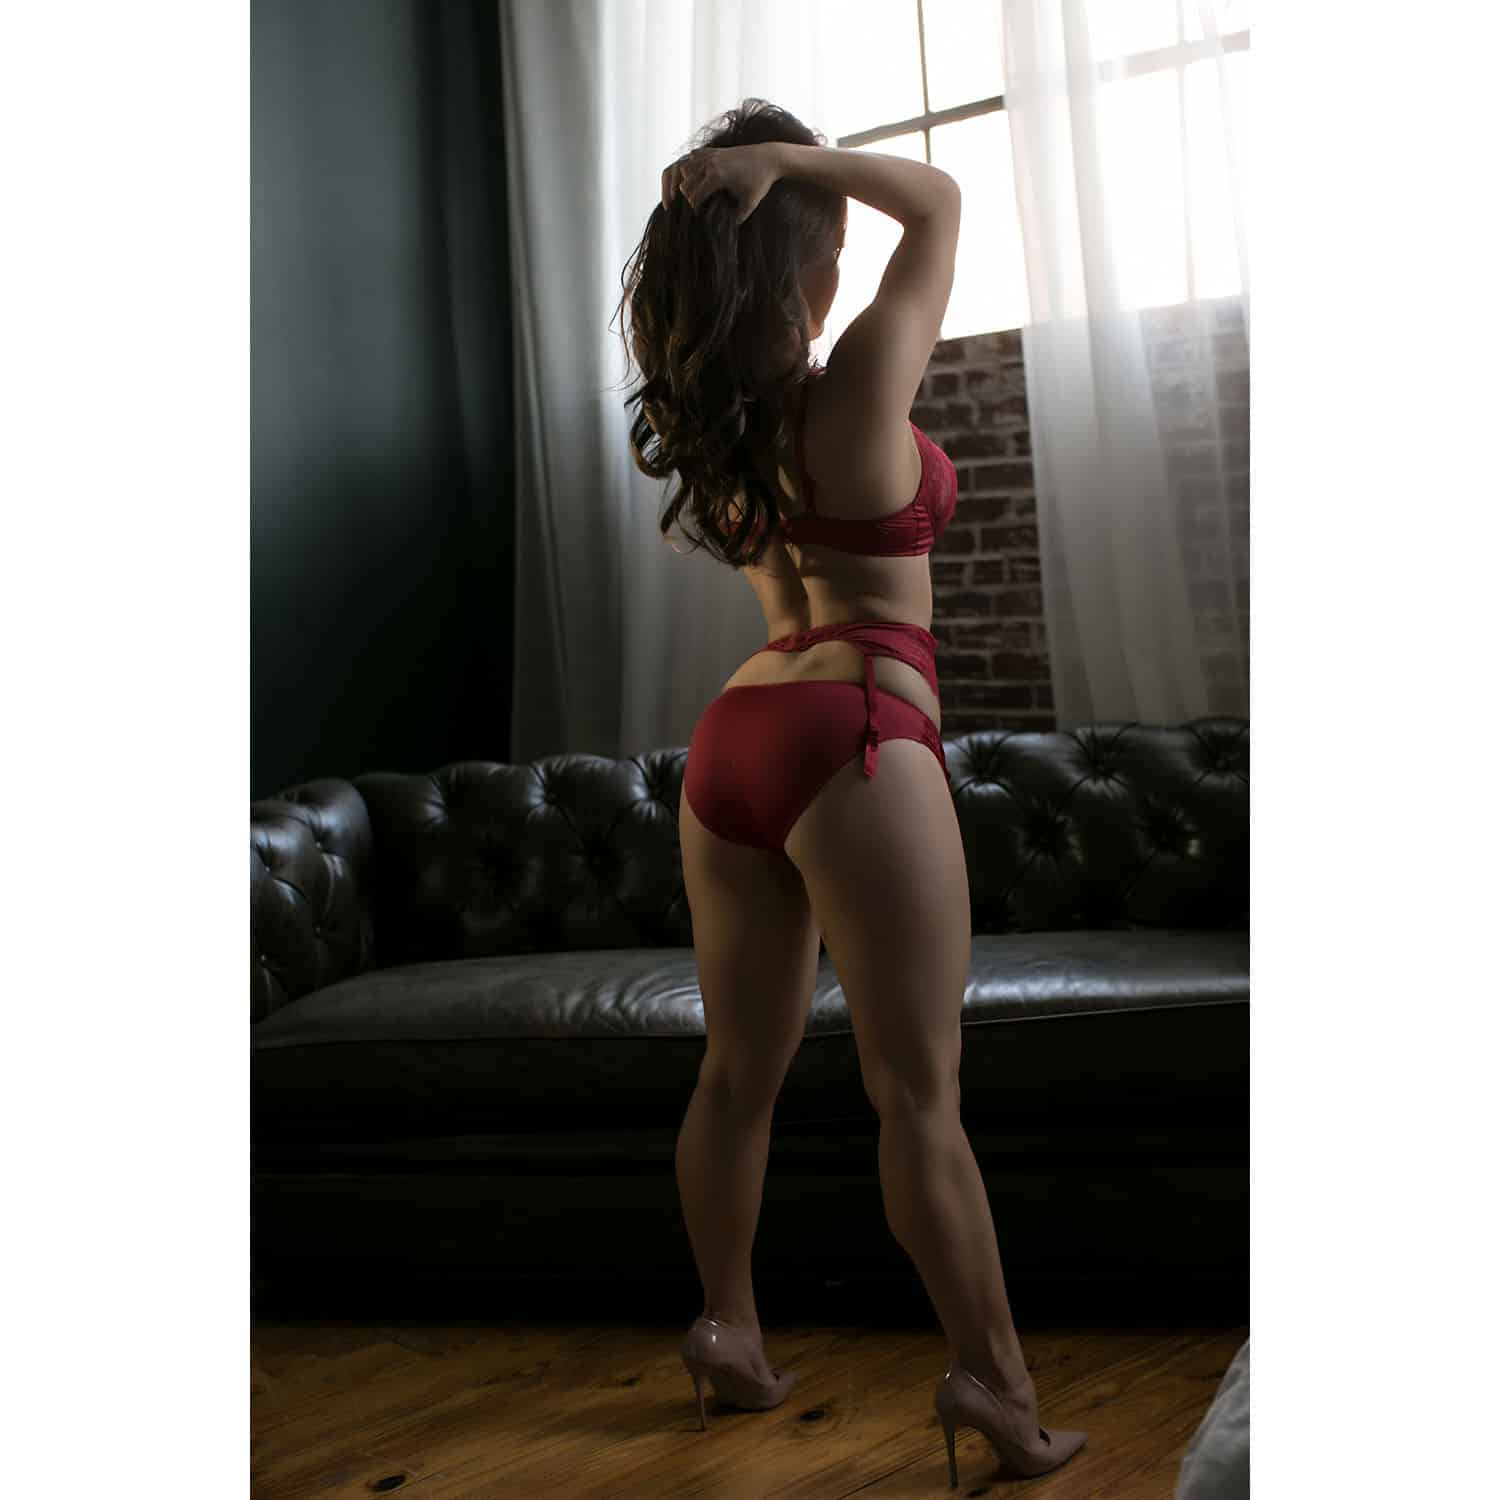 OWN Boudoir's portrait of a woman posing in red lingerie while looking out a window